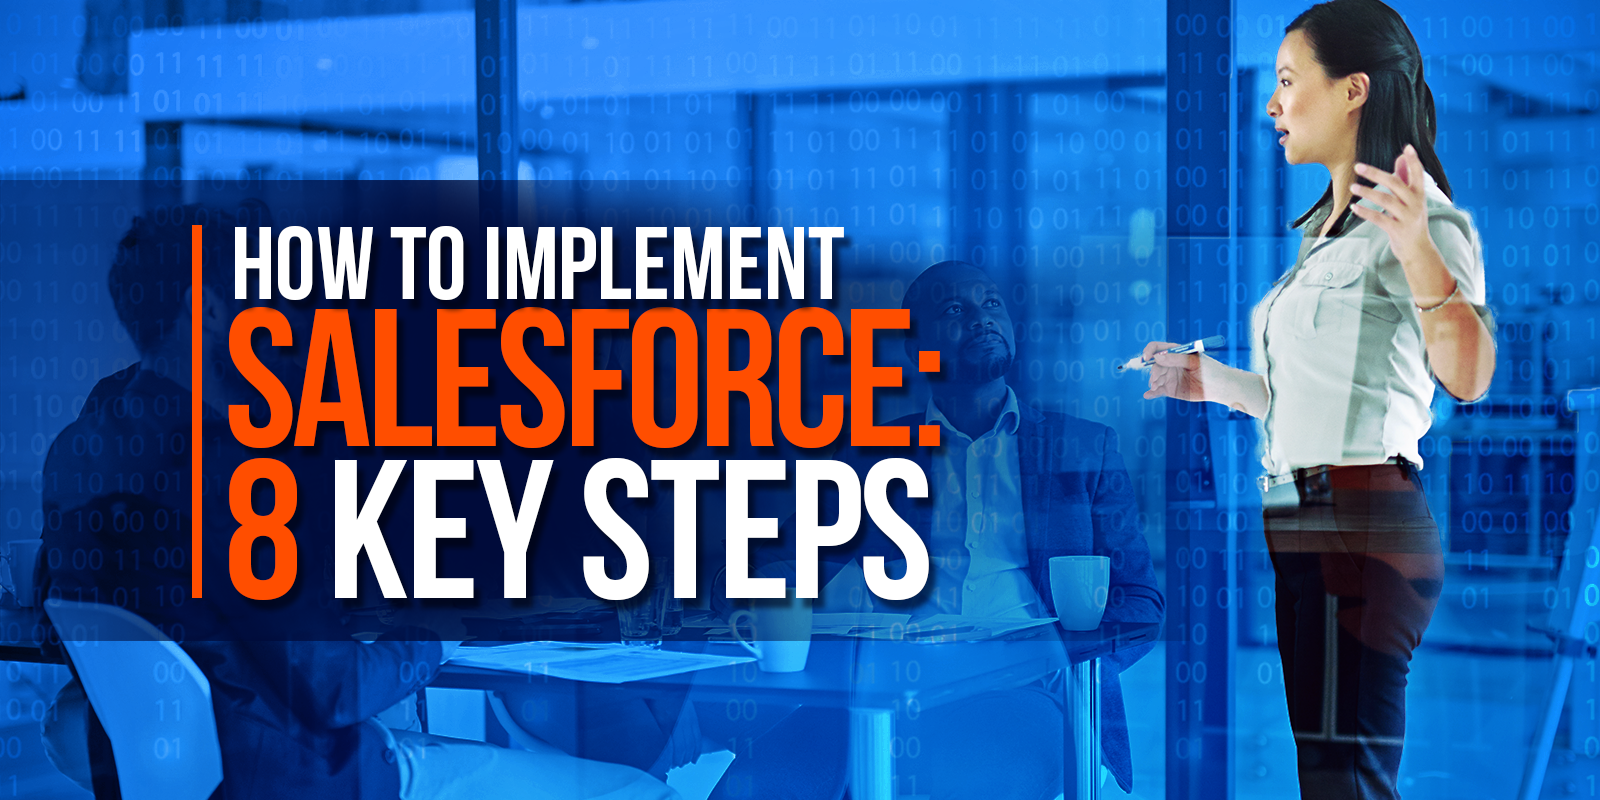 How to Implement Salesforce: 8 Key Steps